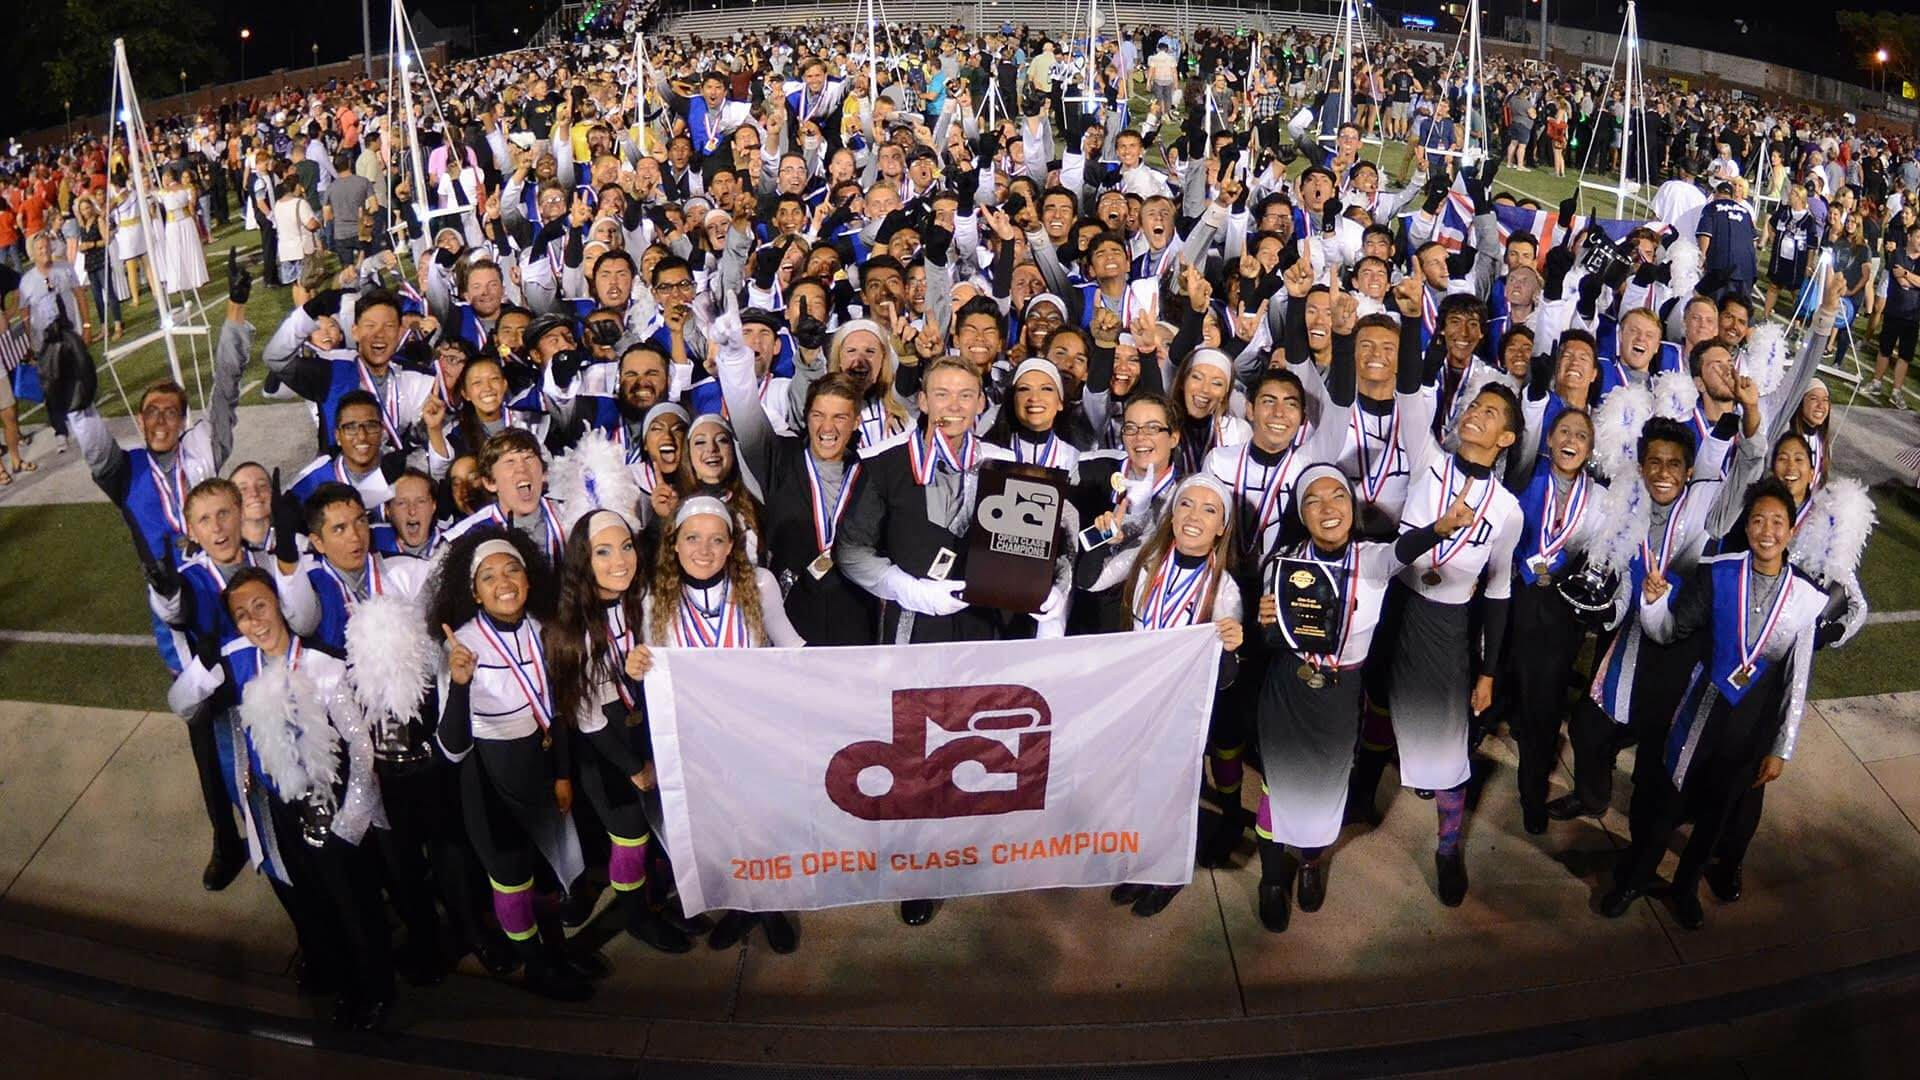 Blue Devils B over the moon with fifth Open Class title